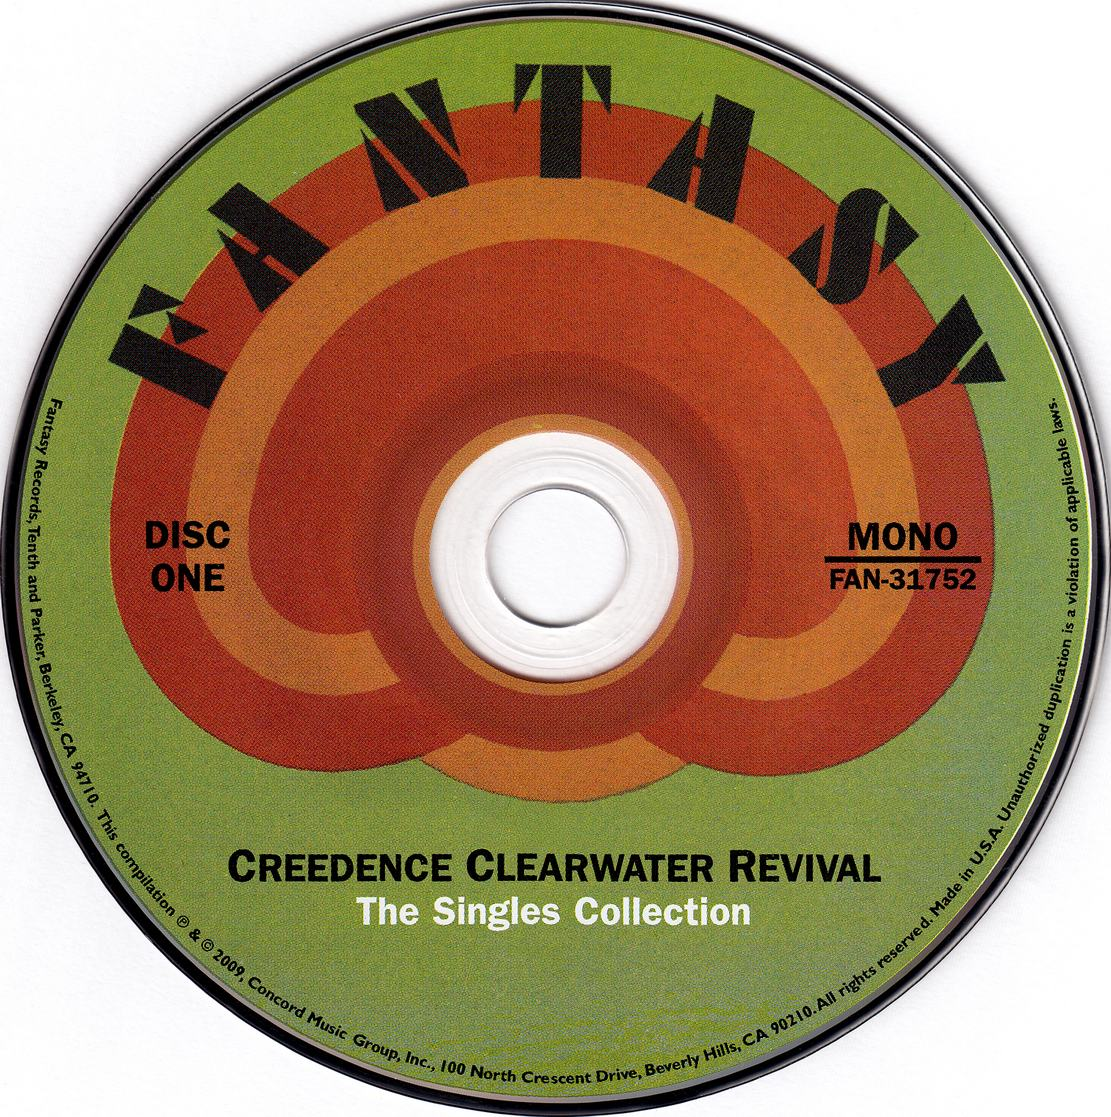 Creedence Clearwater Revival - The Singles Collection (1968